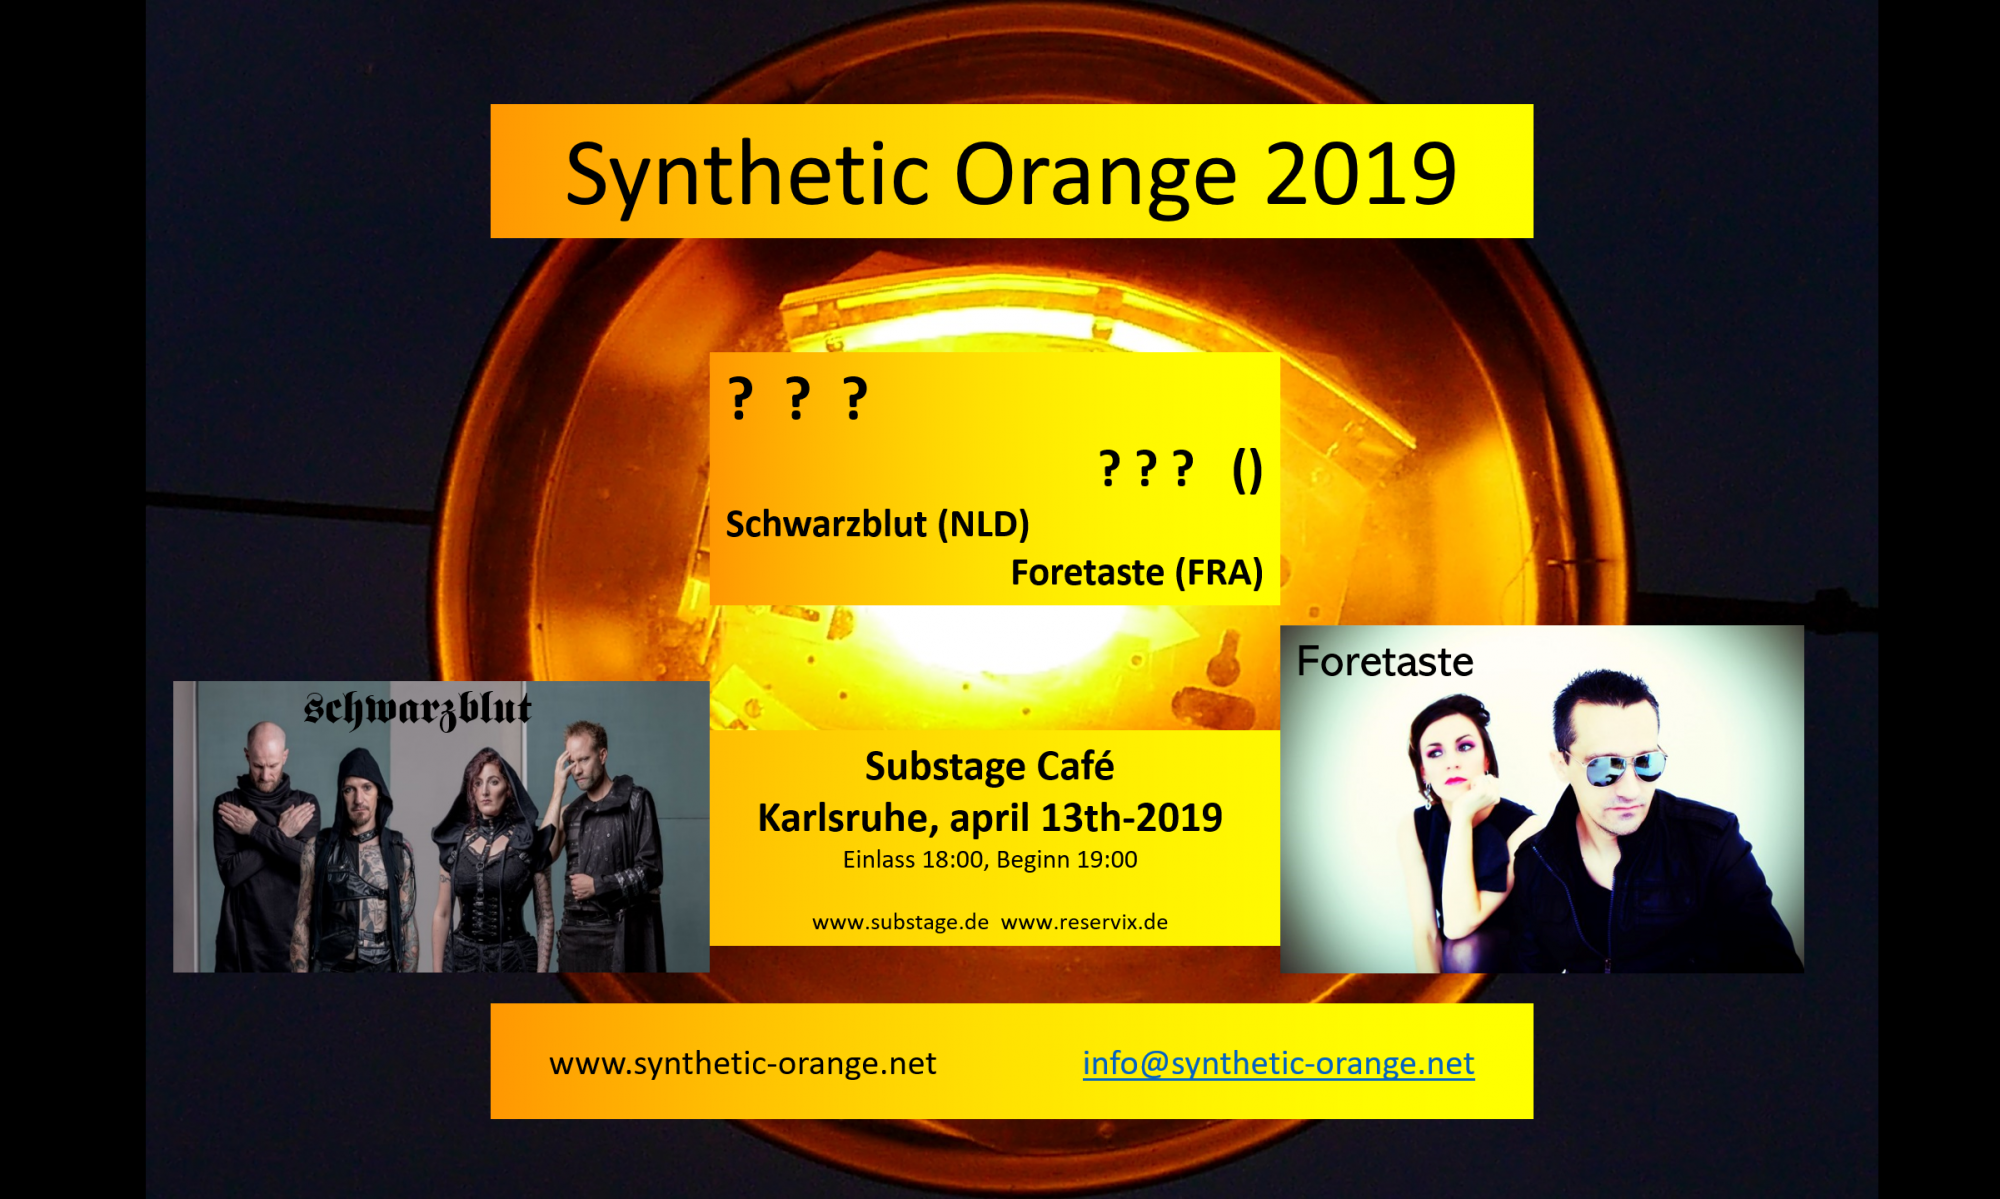 SYNTHETIC ORANGE 2019